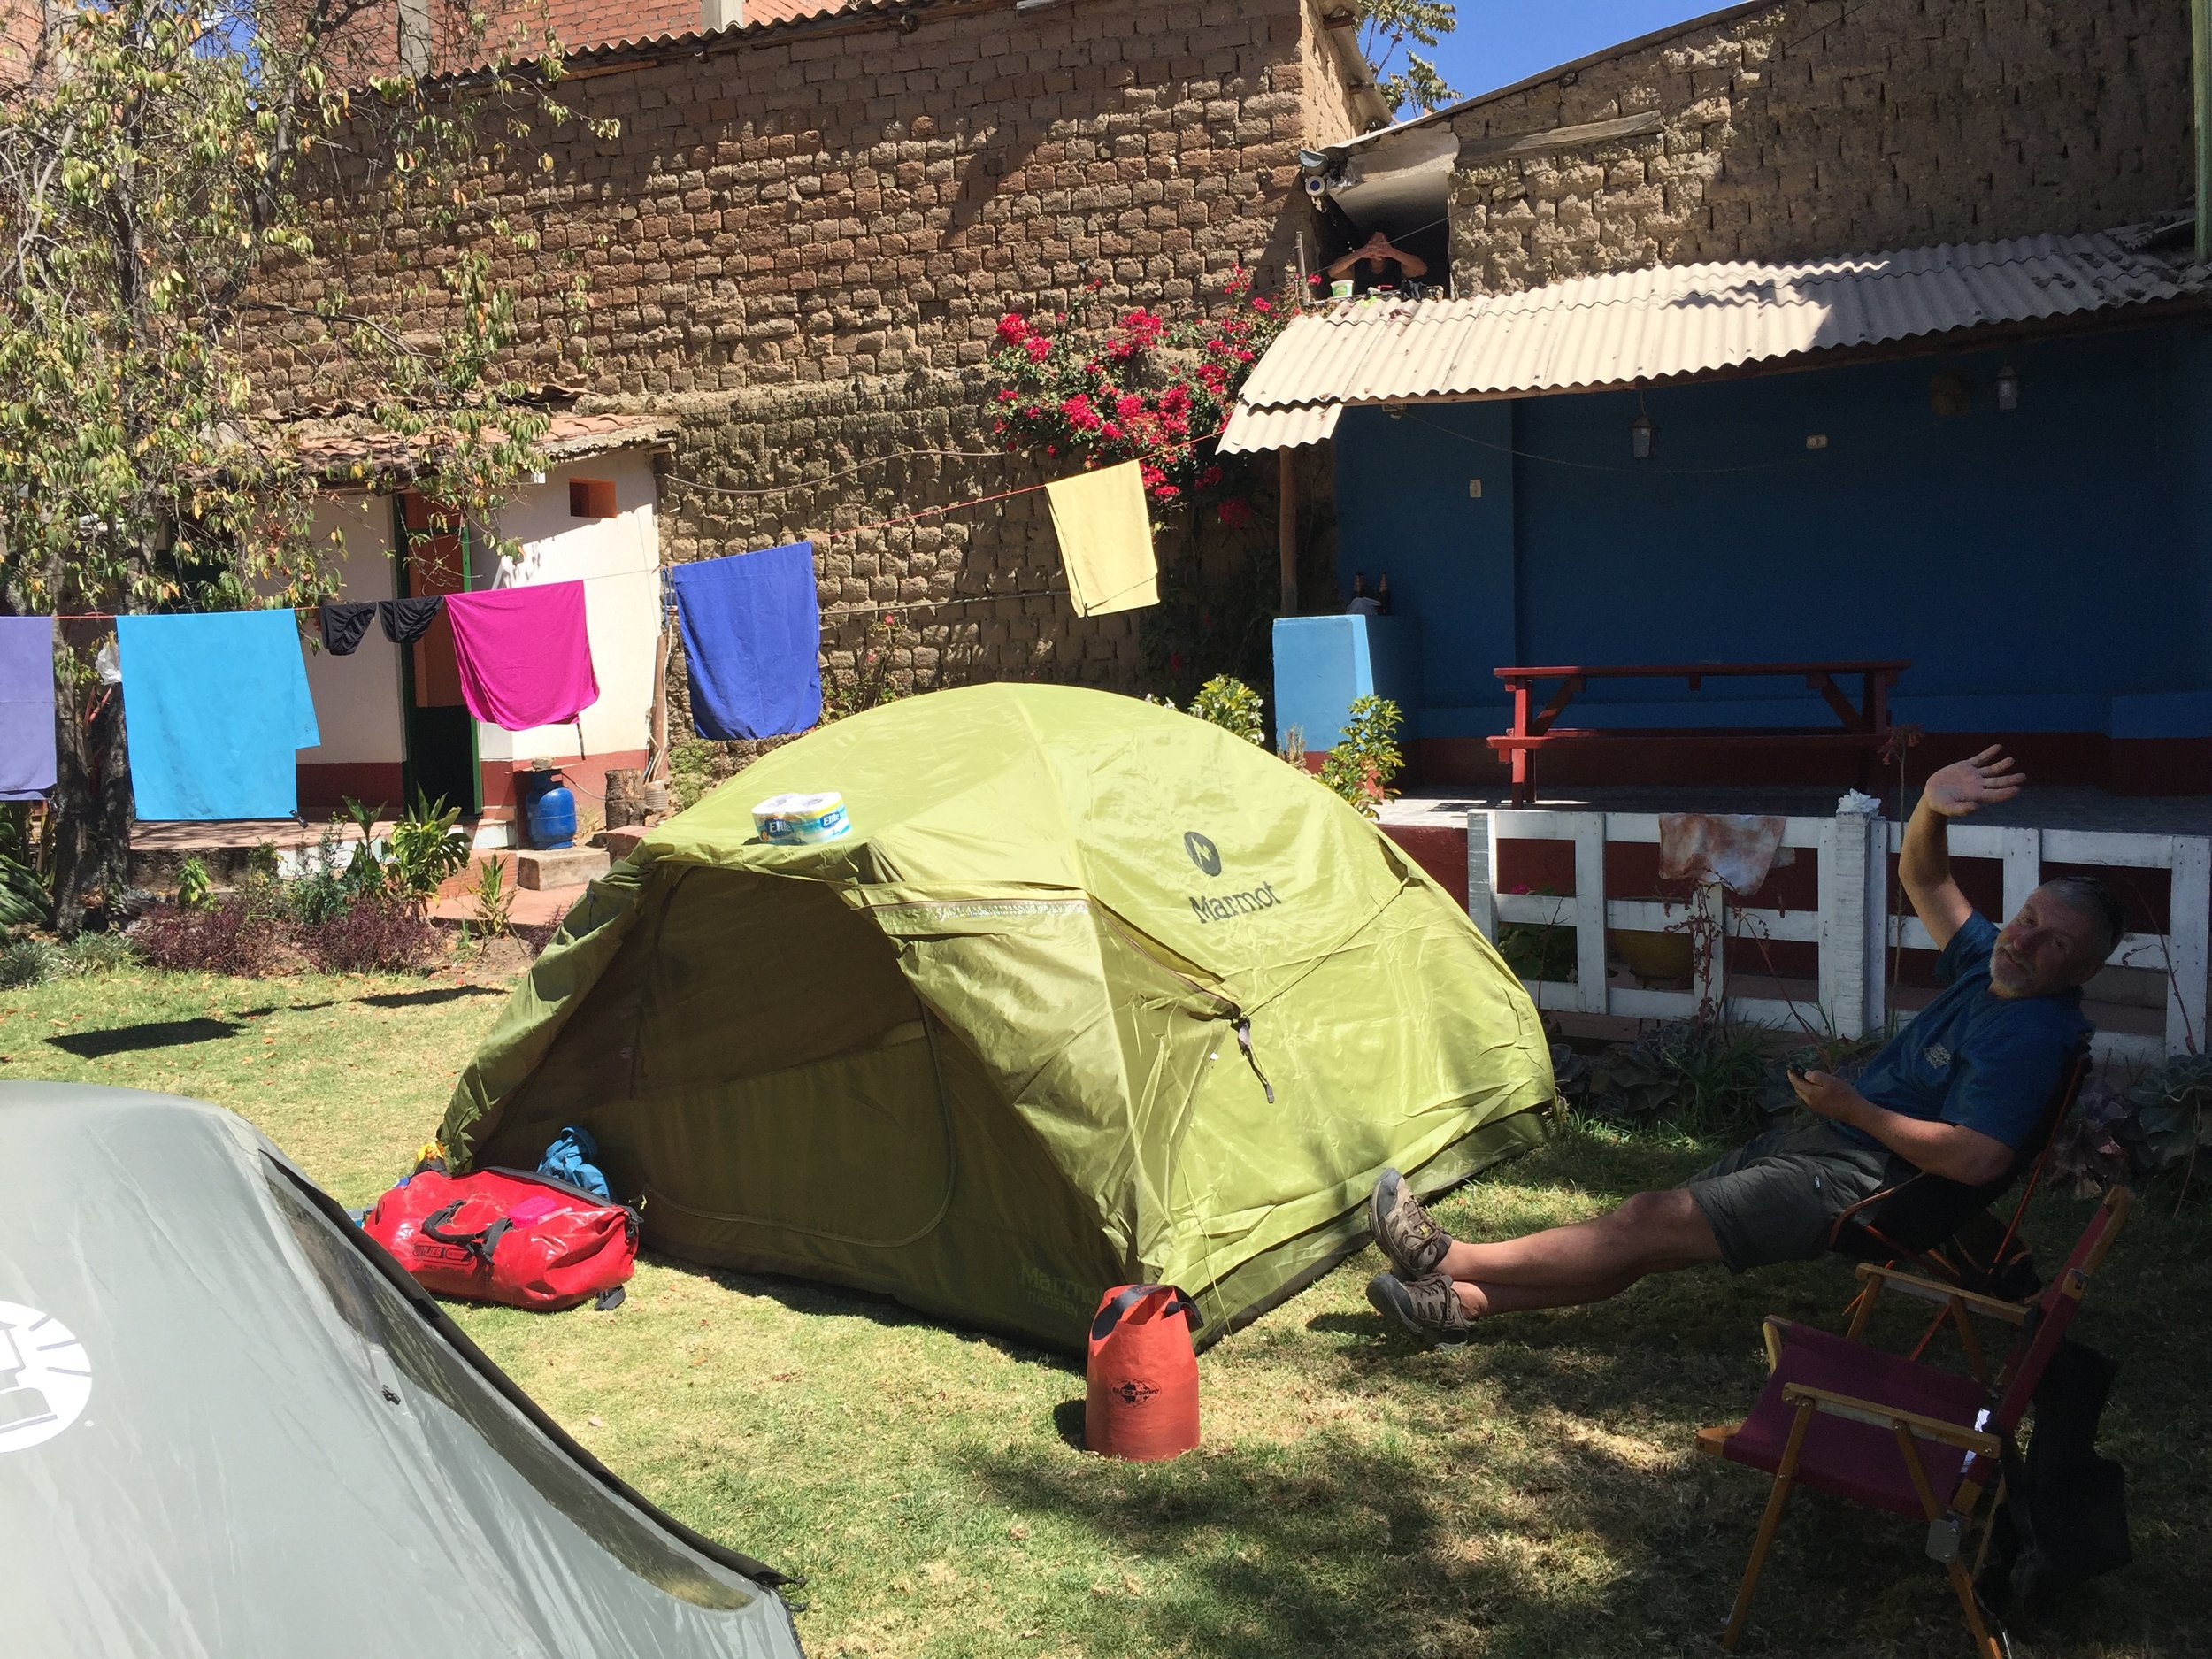 Nothing like a nice grassy spot to camp, especially with WiFi, bathrooms, and total security.  Jo's Place in Huaraz, Peru.